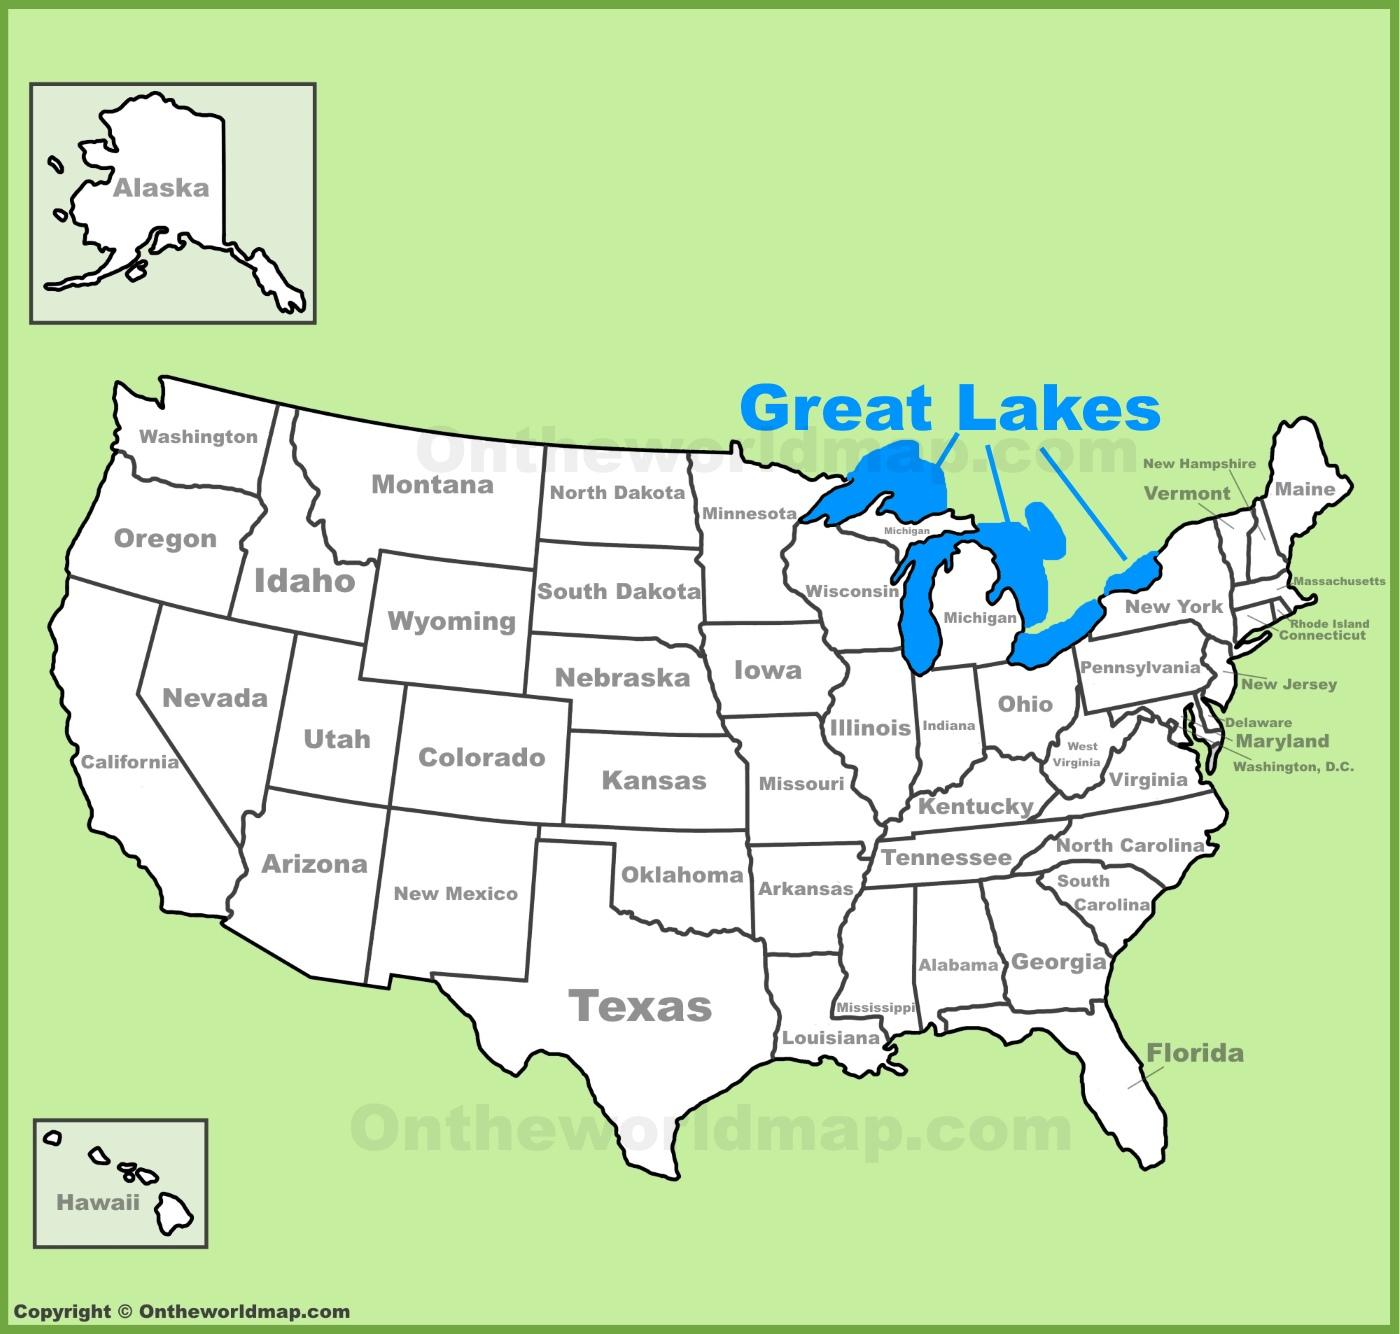 Great Lakes location on the U.S. Map